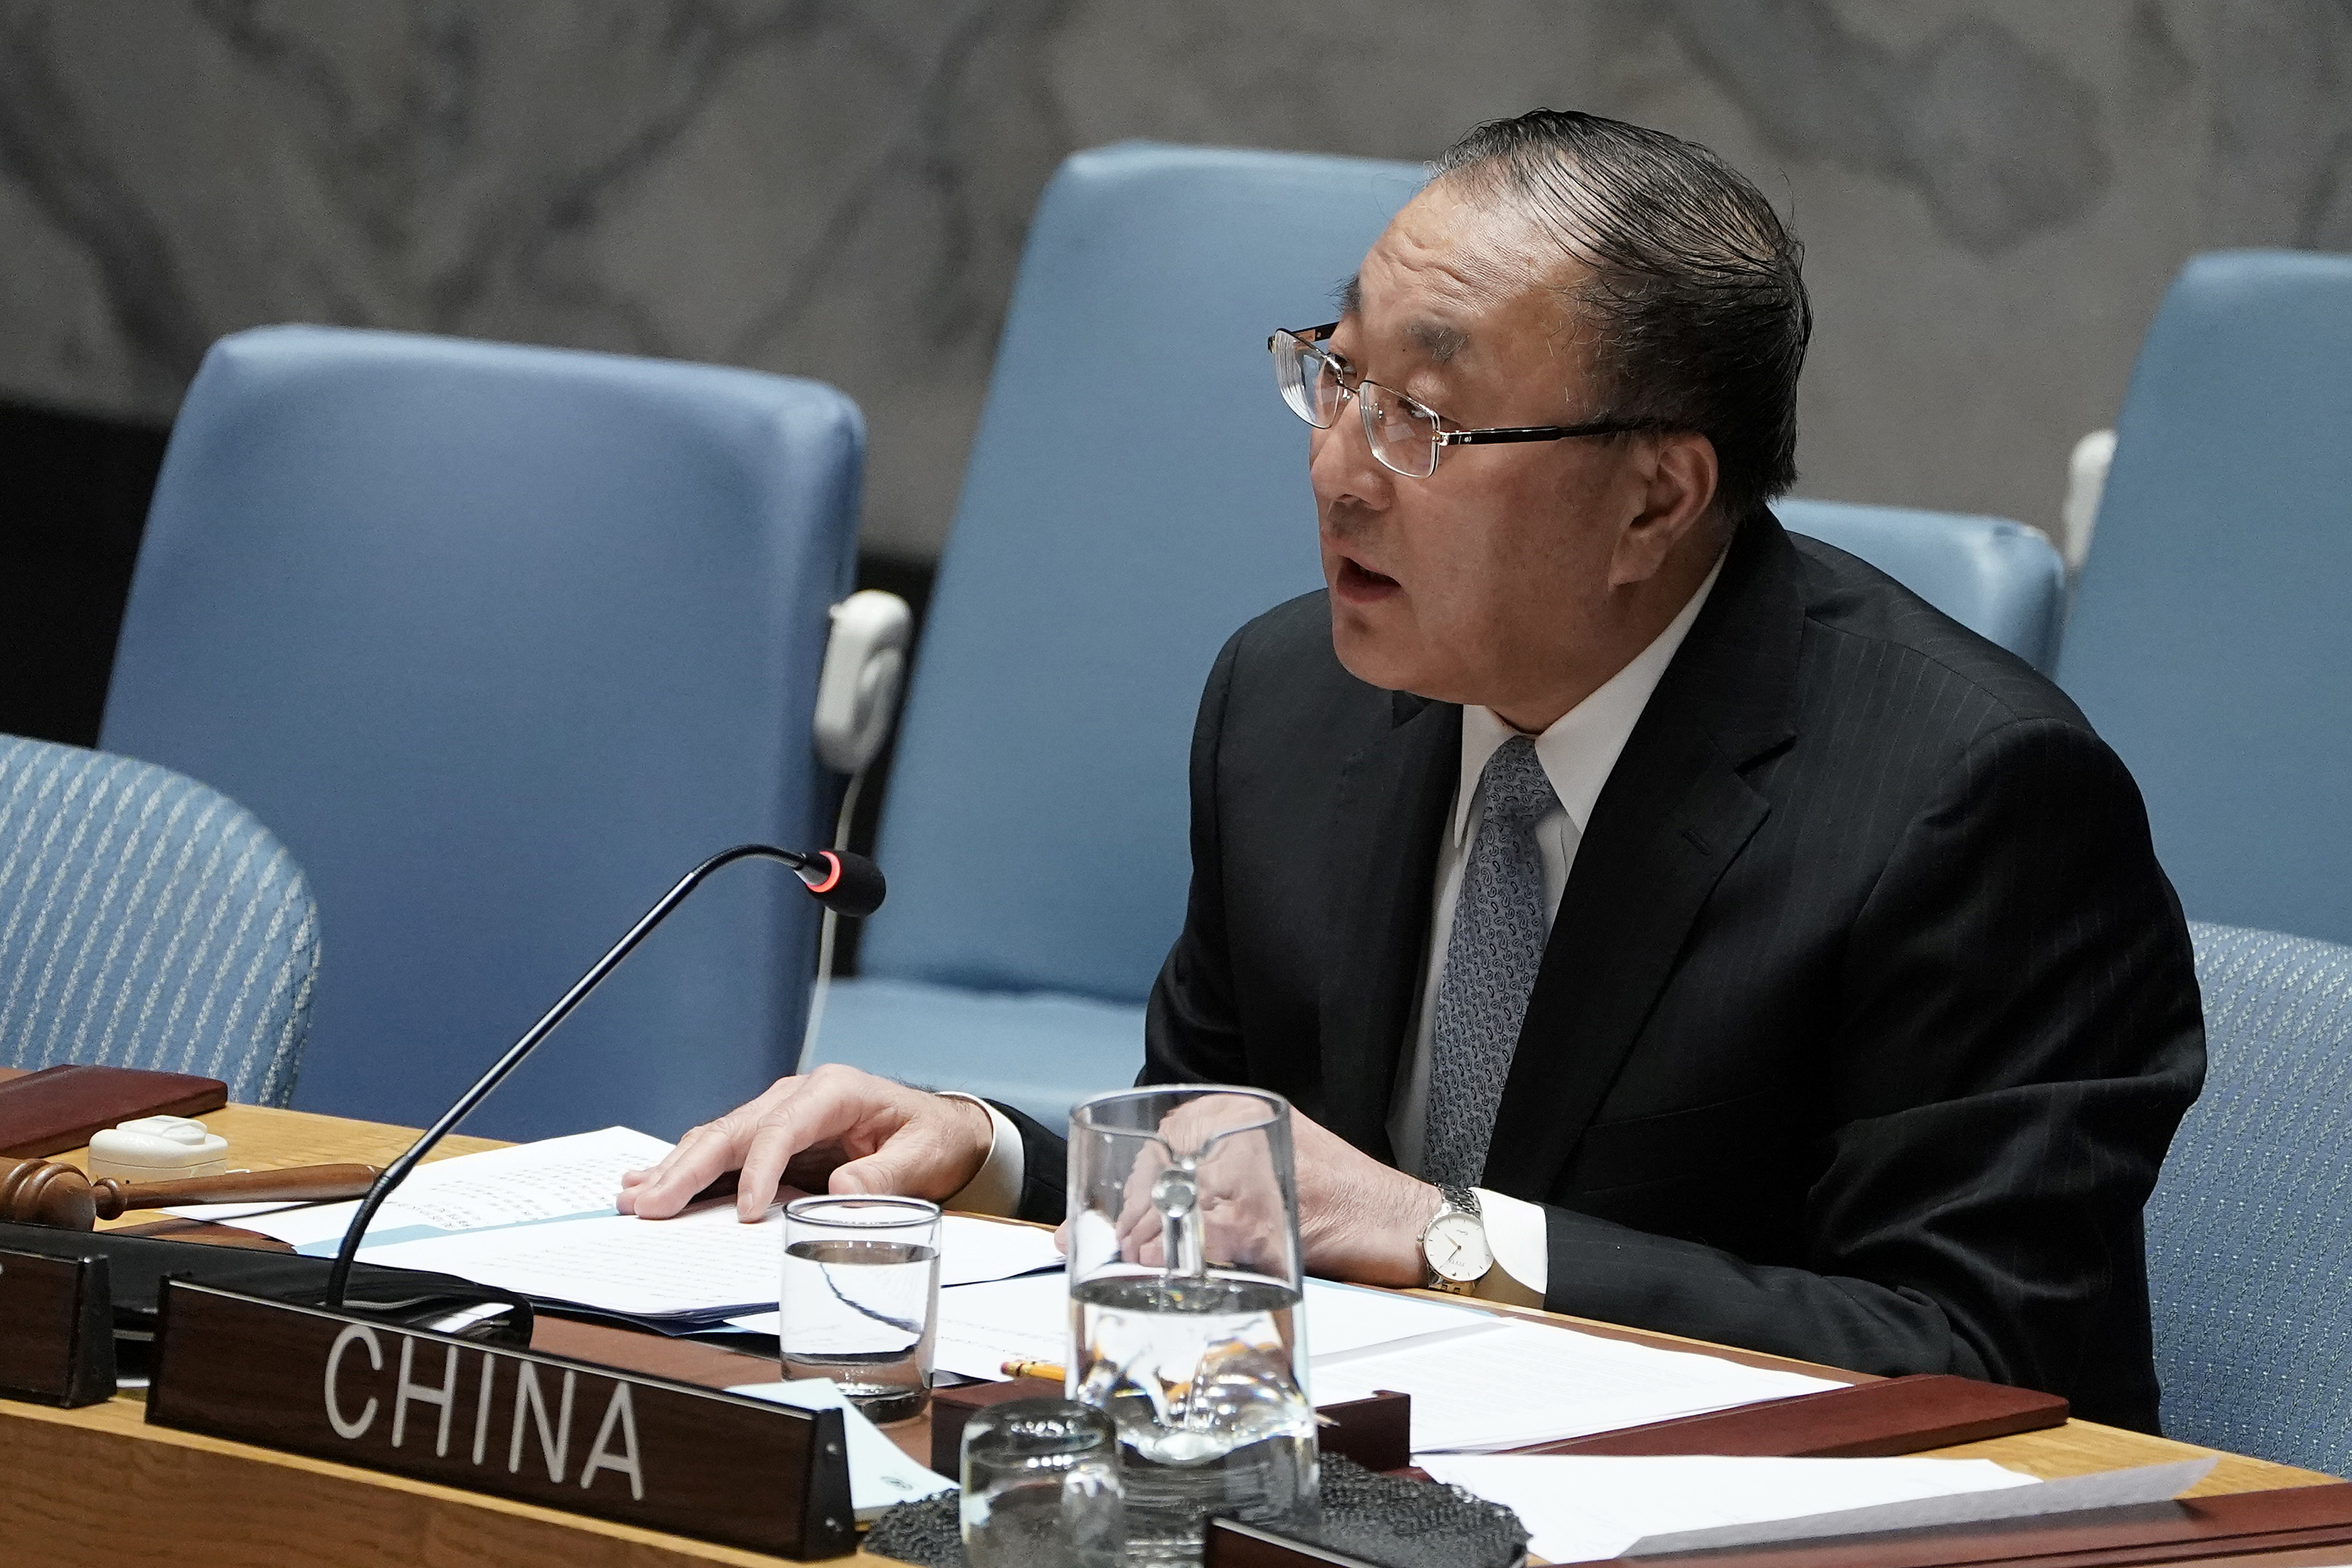 Zhang Jun, China's Ambassador to the United Nations speaks at a Security Council meeting about Afghanistan at United Nations Headquarters in the Manhattan borough of New York City, New York, U.S., March 10, 2020. REUTERS/Carlo Allegri